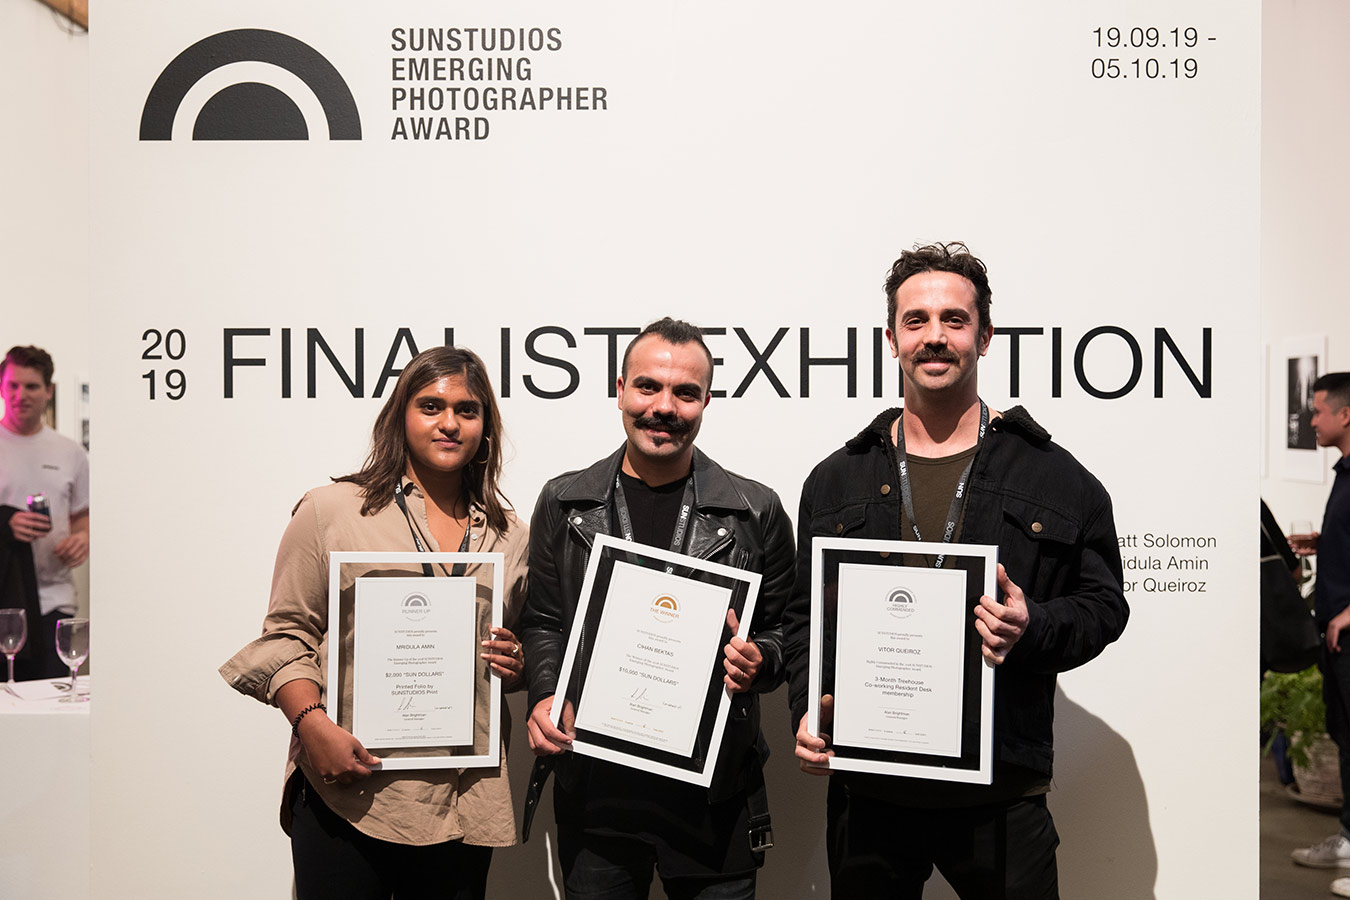 SEPA 2019 winners L-R Mridula Amin (Runner Up), Cihan Bektas (Winner) and Vitor Queiroz (Highly Commended). Image by Daniele Massacci.